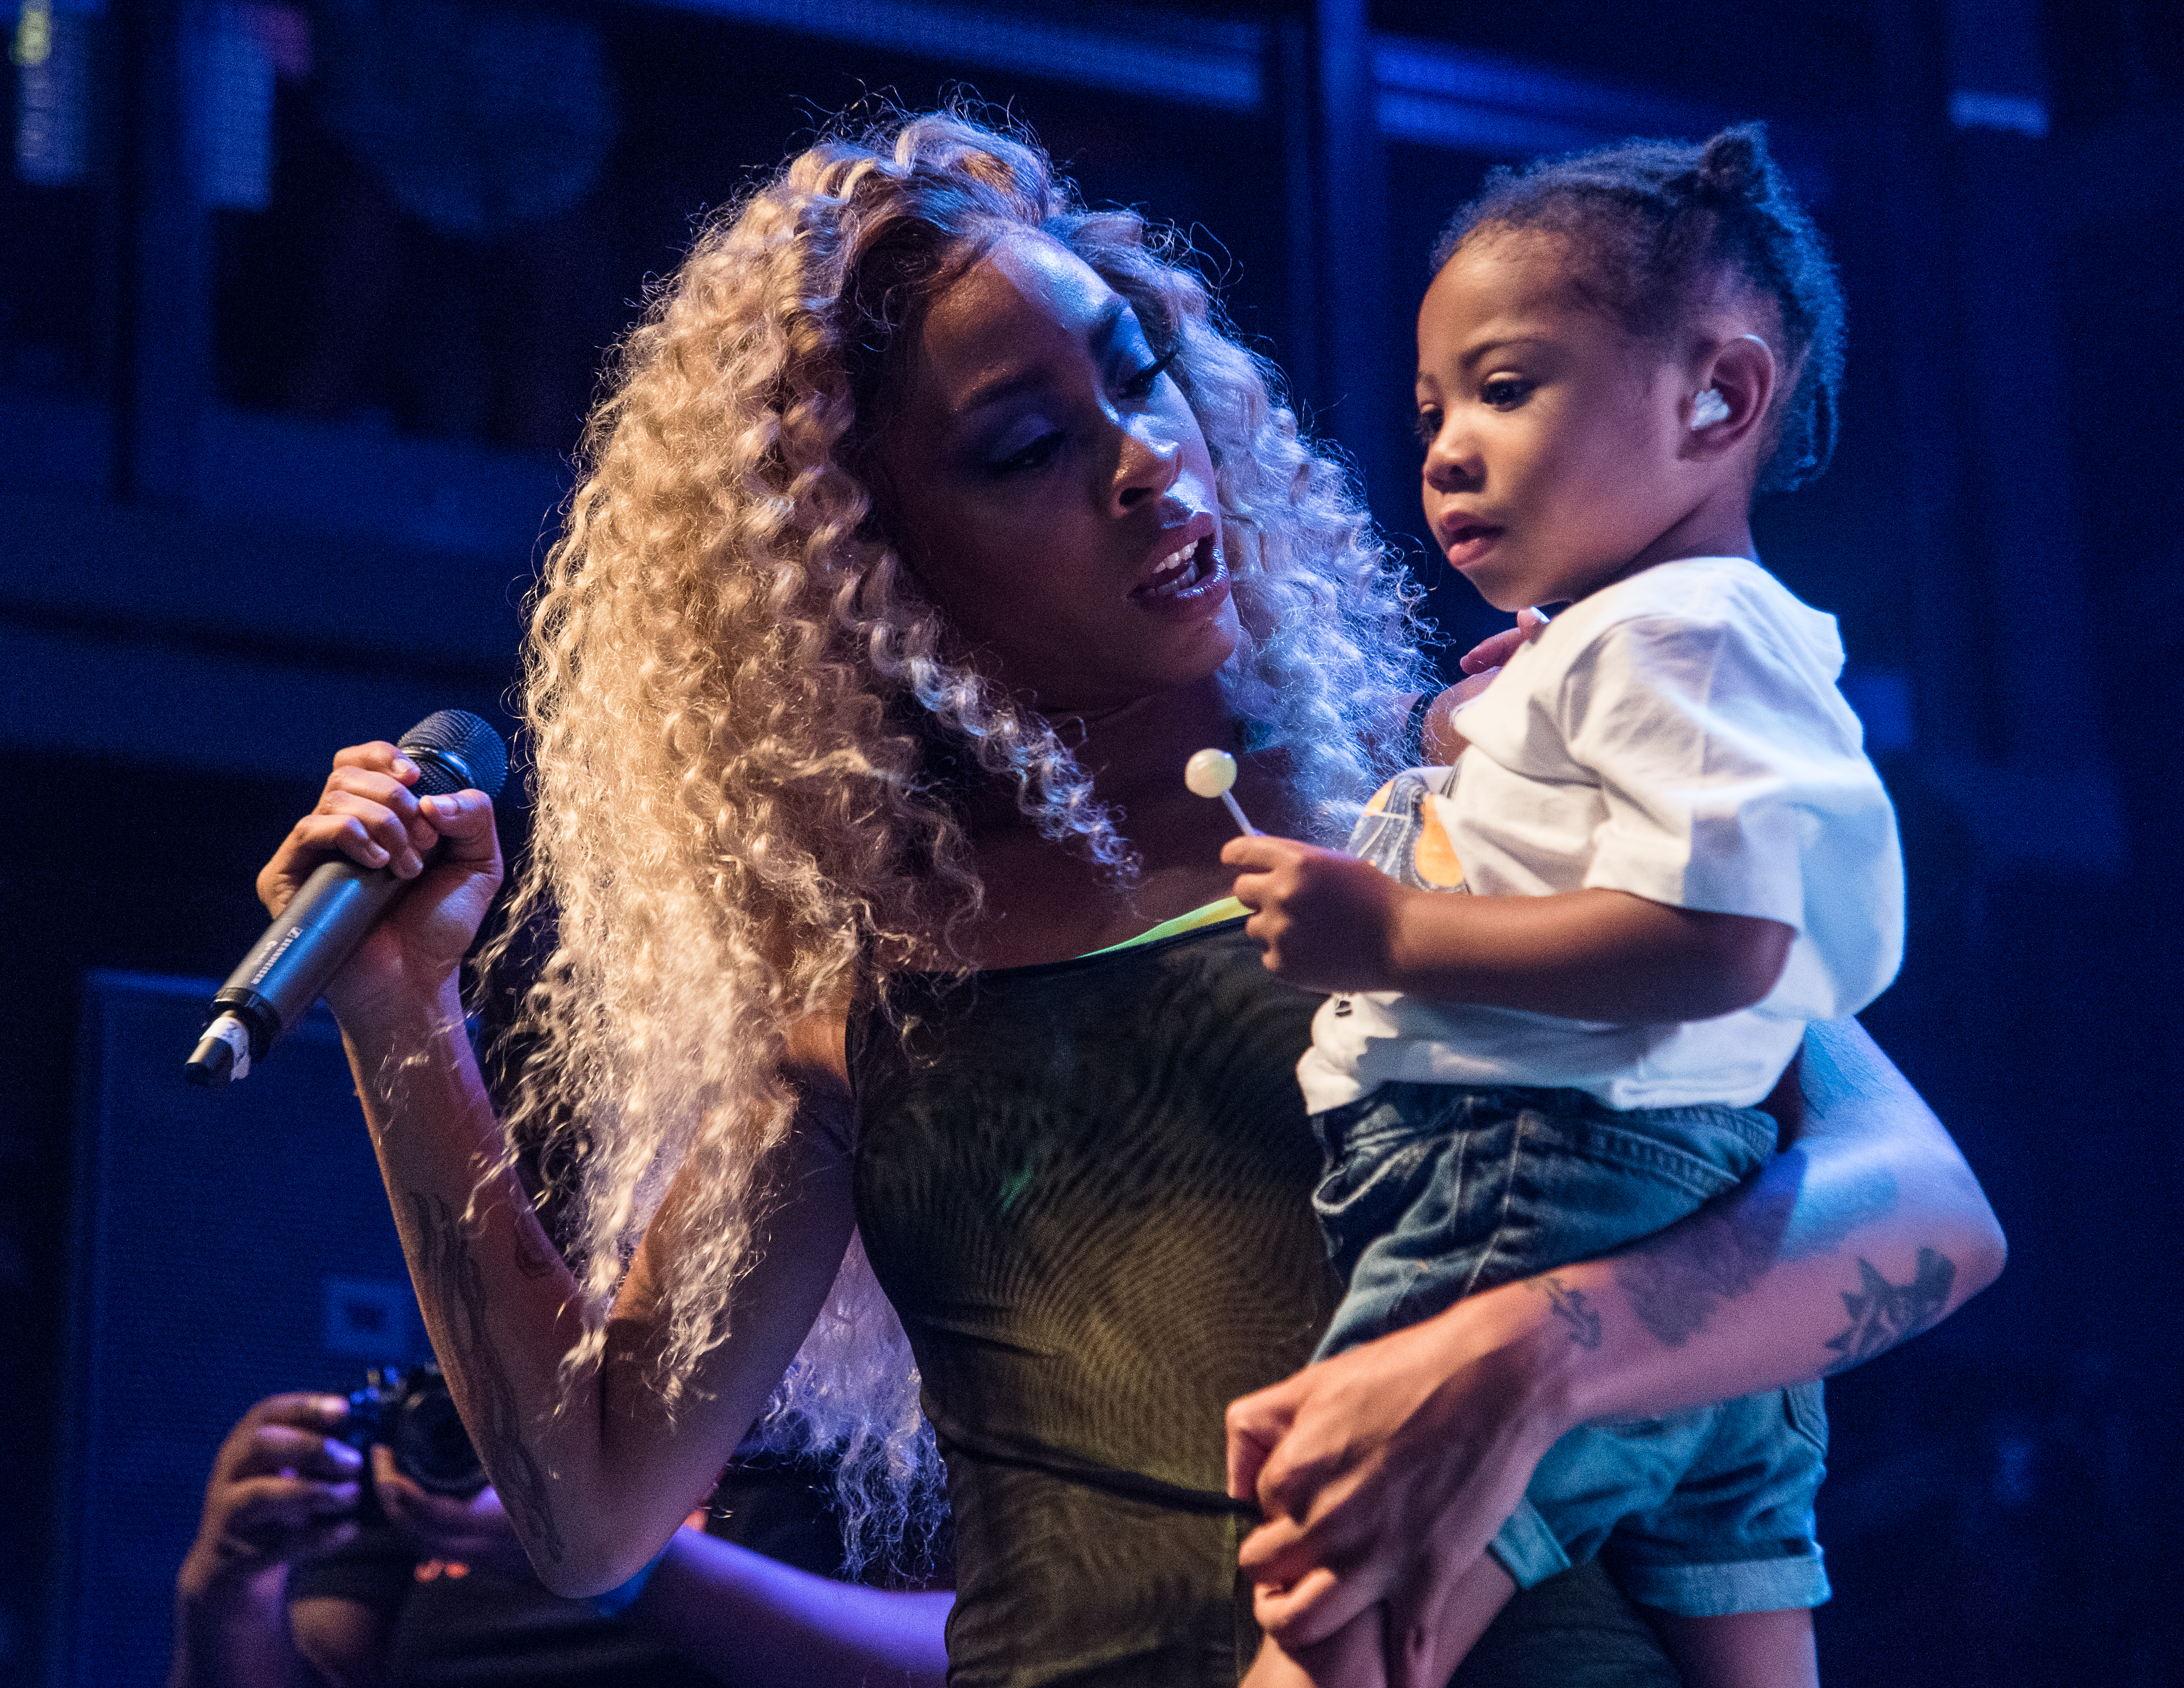 Rico Nasty (Maria-Cecilia Simone Kelly ) on stage with her son Tuesday evening at the Fillmore Silver Spring.